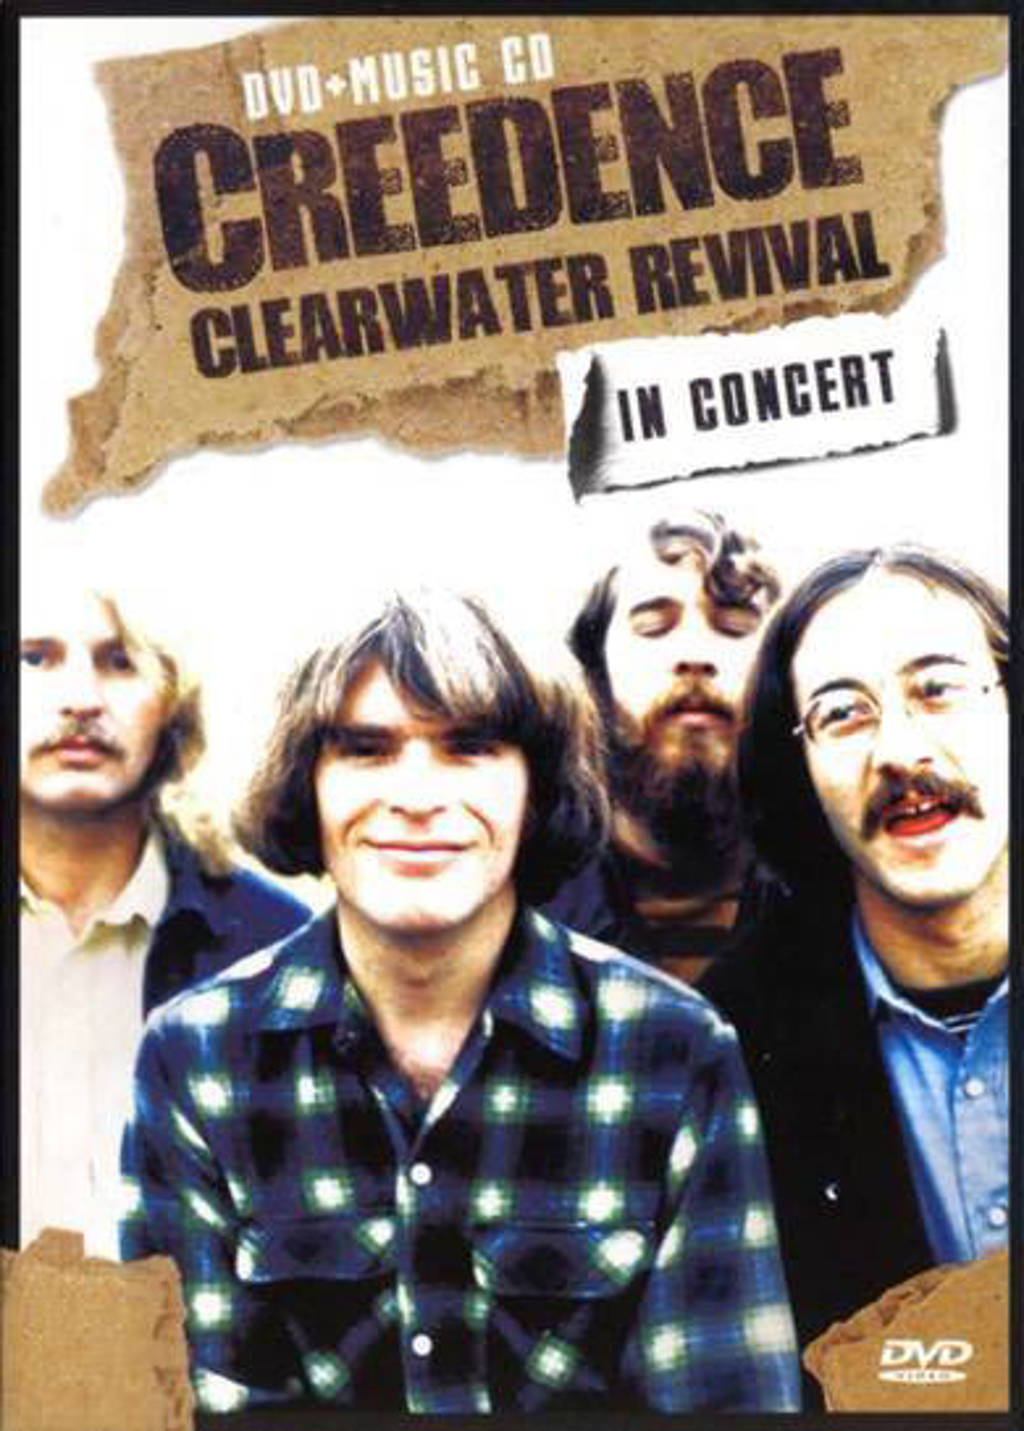 Creedence clearwater revival - In concert (DVD)